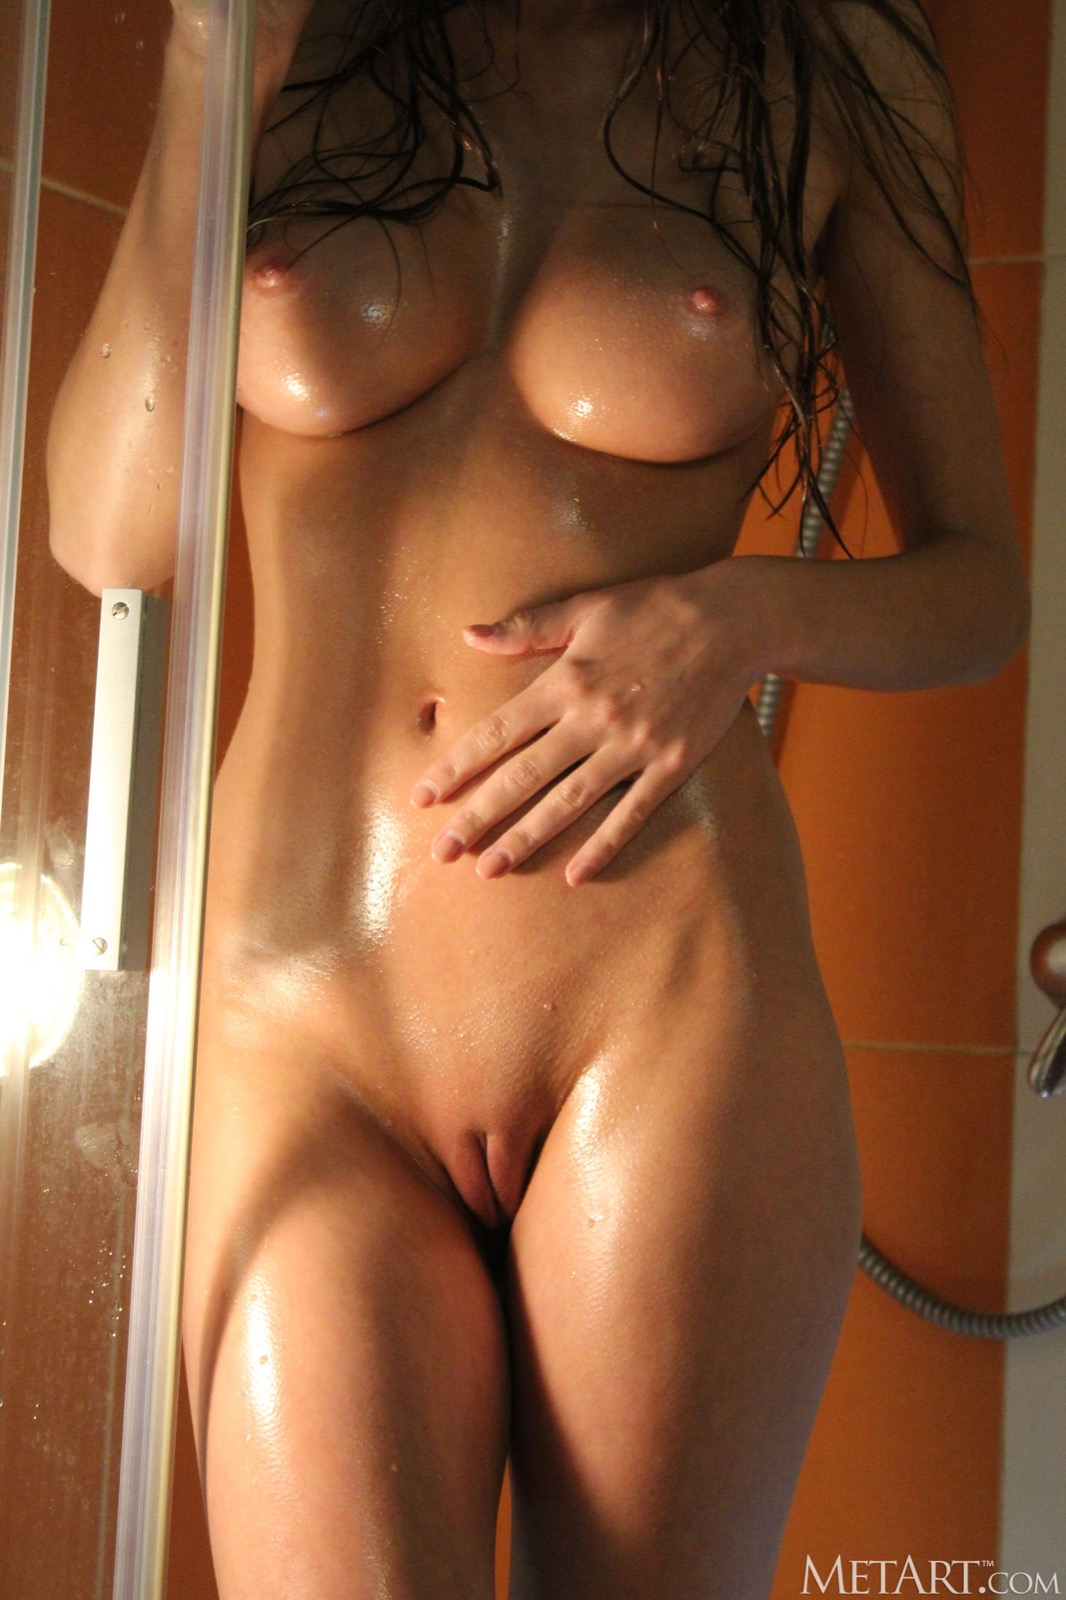 ugly long nipples adult porn tube watch and download #HollyHaim #brunette #bigtits #perfecttits #pussy #shaved #shavedpussy #coinslot #slit #perfectpussy #wet #shower #sexy #fuckable #cute